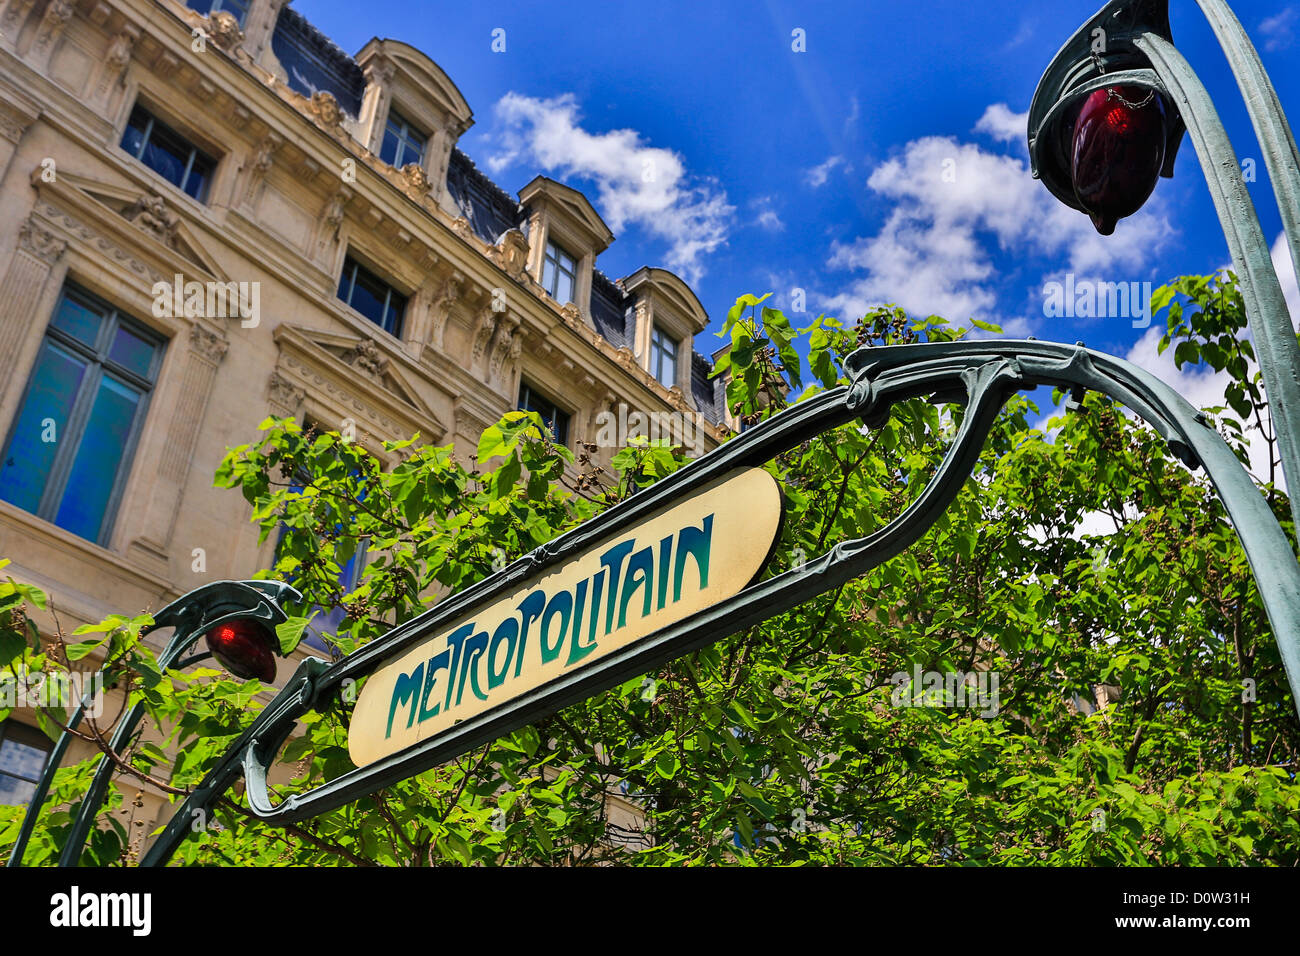 France, Europe, travel, Paris, City, Metro, subway, Station, art nouveau, entrance, lamp, metropolitain, old, sign, - Stock Image